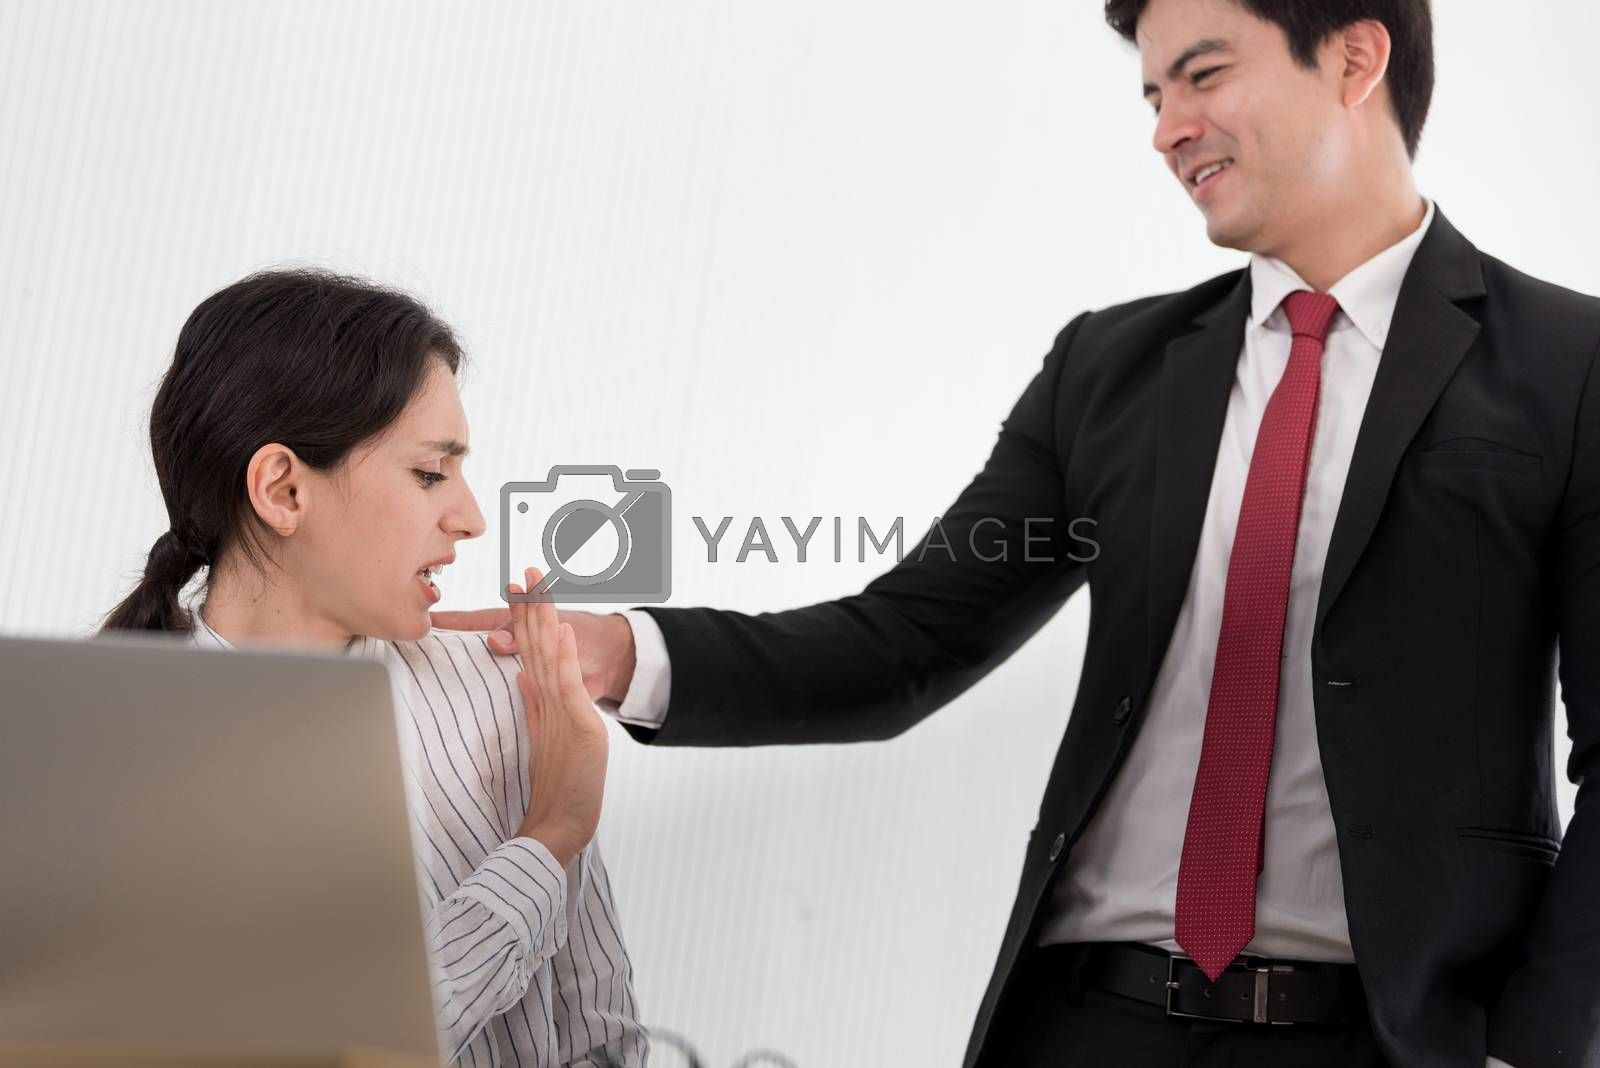 The uncomfortable scared woman and worry by her boss at the office in Sexual harassment at the workplace.